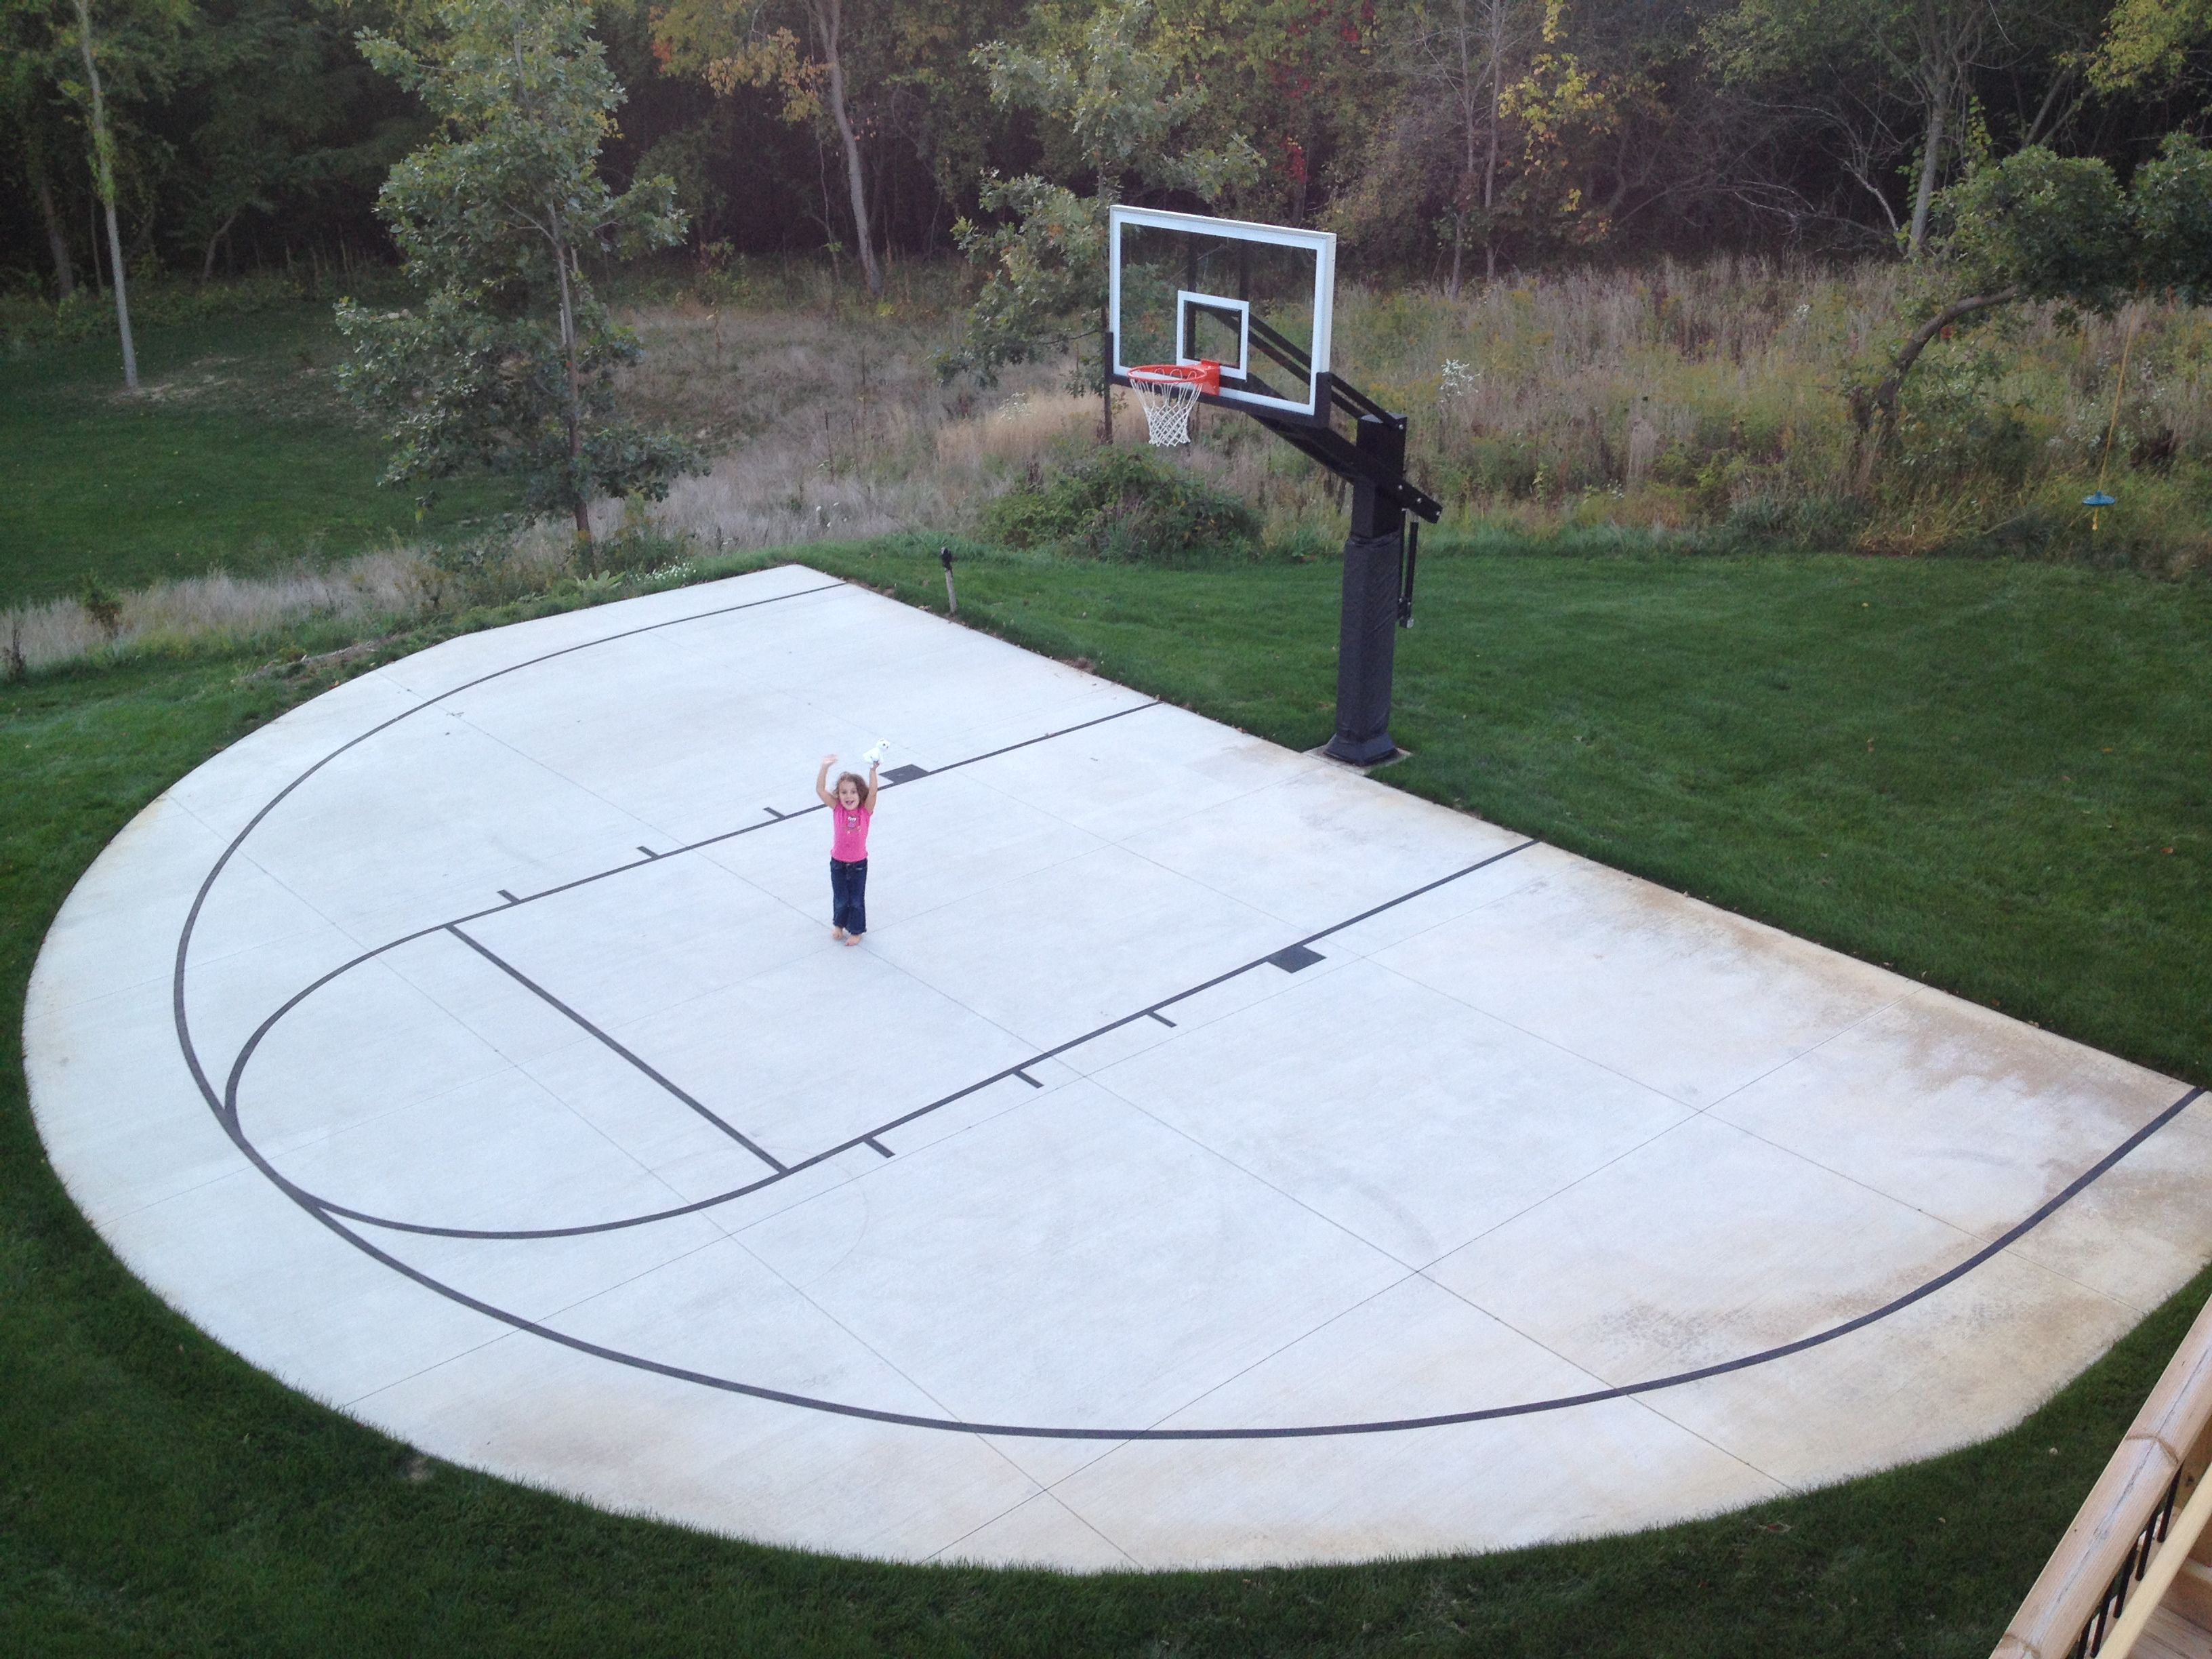 Pin By Jenny Chang On Backyard Basketball Court Basketball Court Backyard Backyard Sports Backyard Basketball